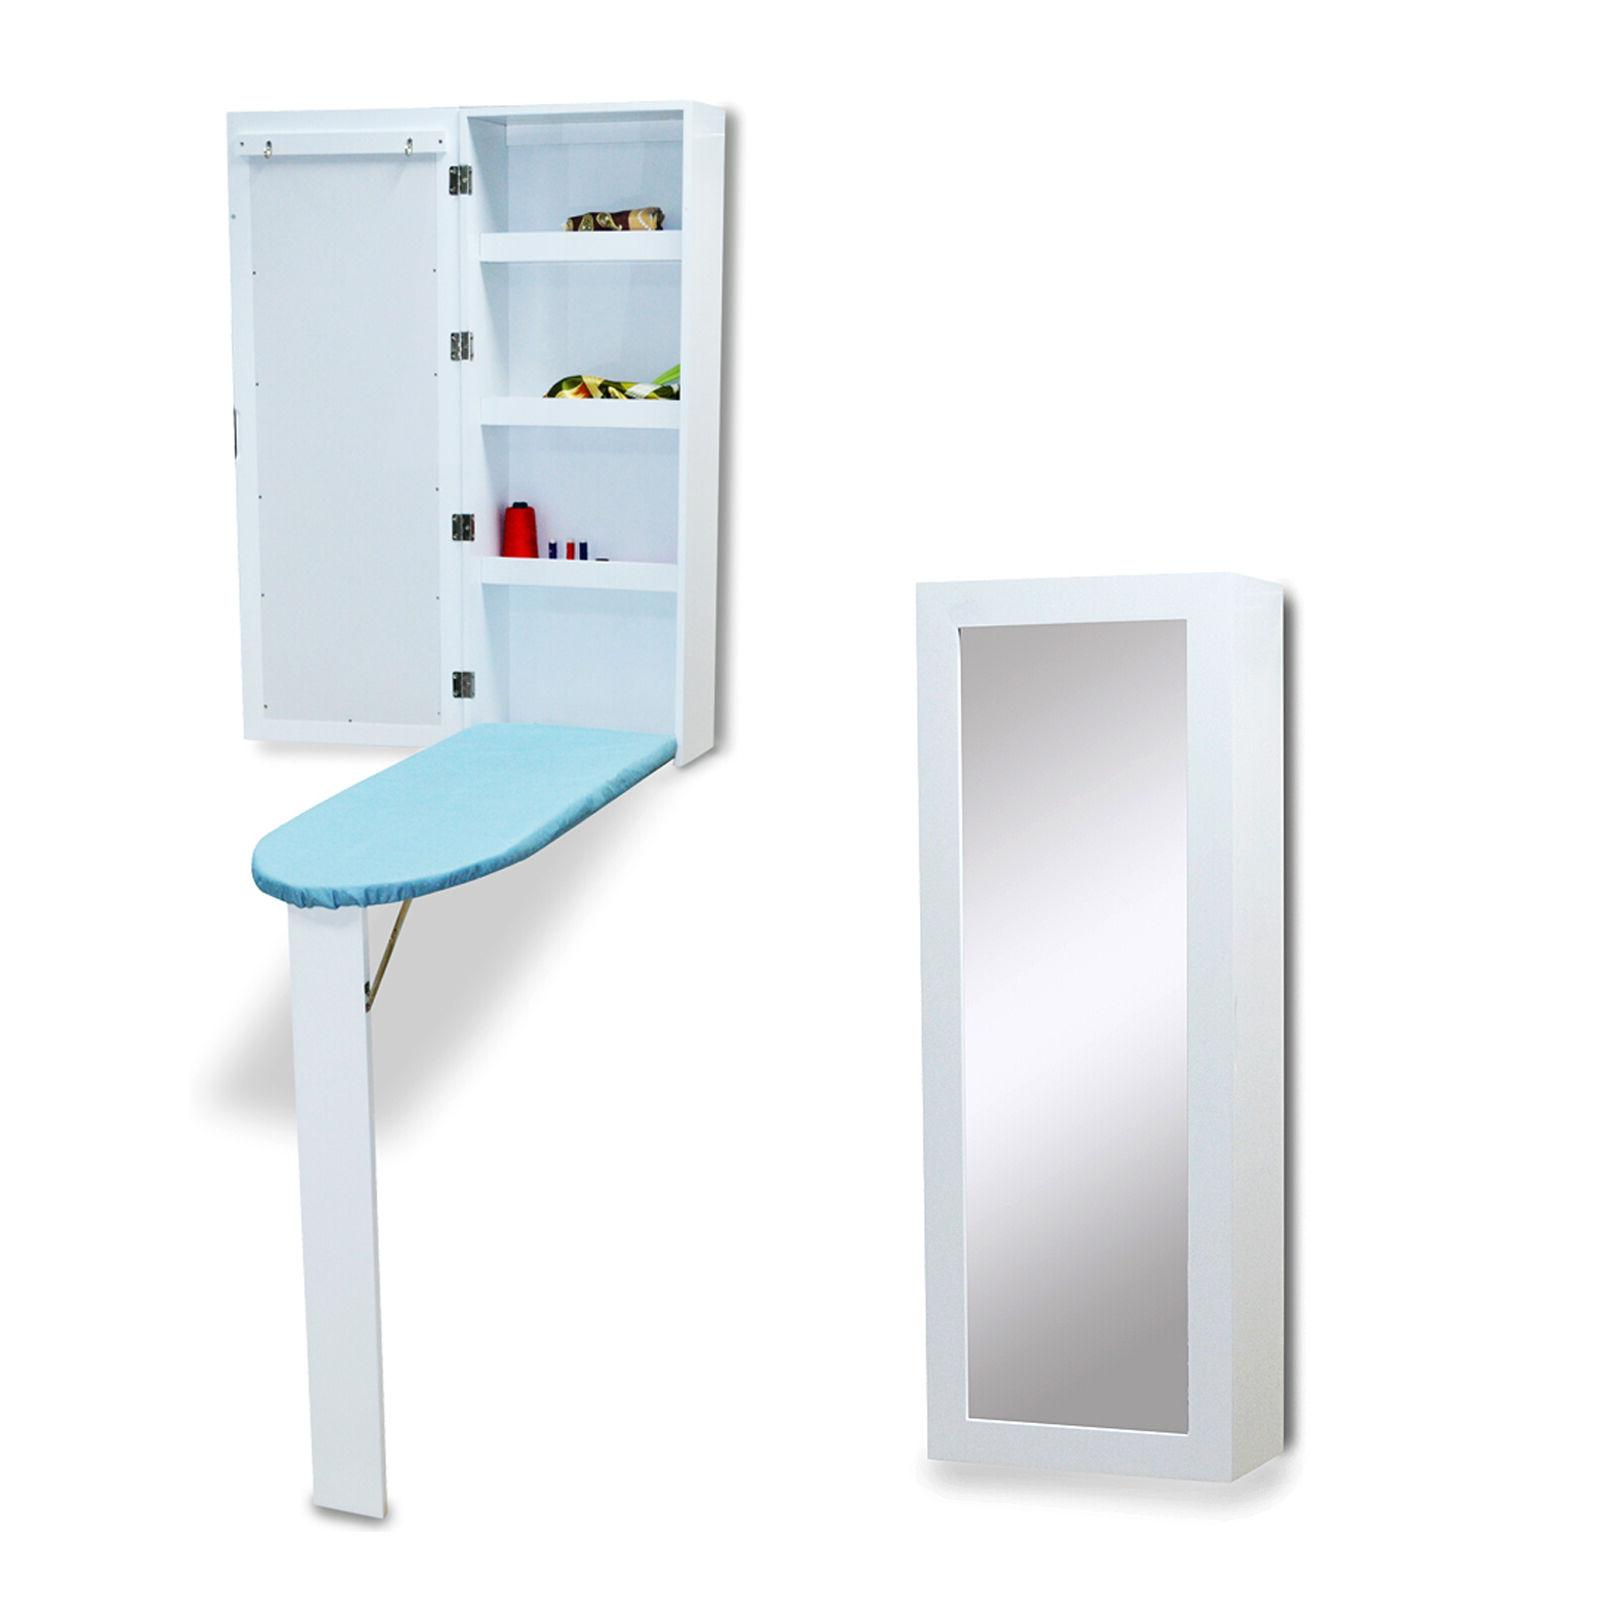 Ironing Board Cabinet Organizer with Storage and Mirror Hide